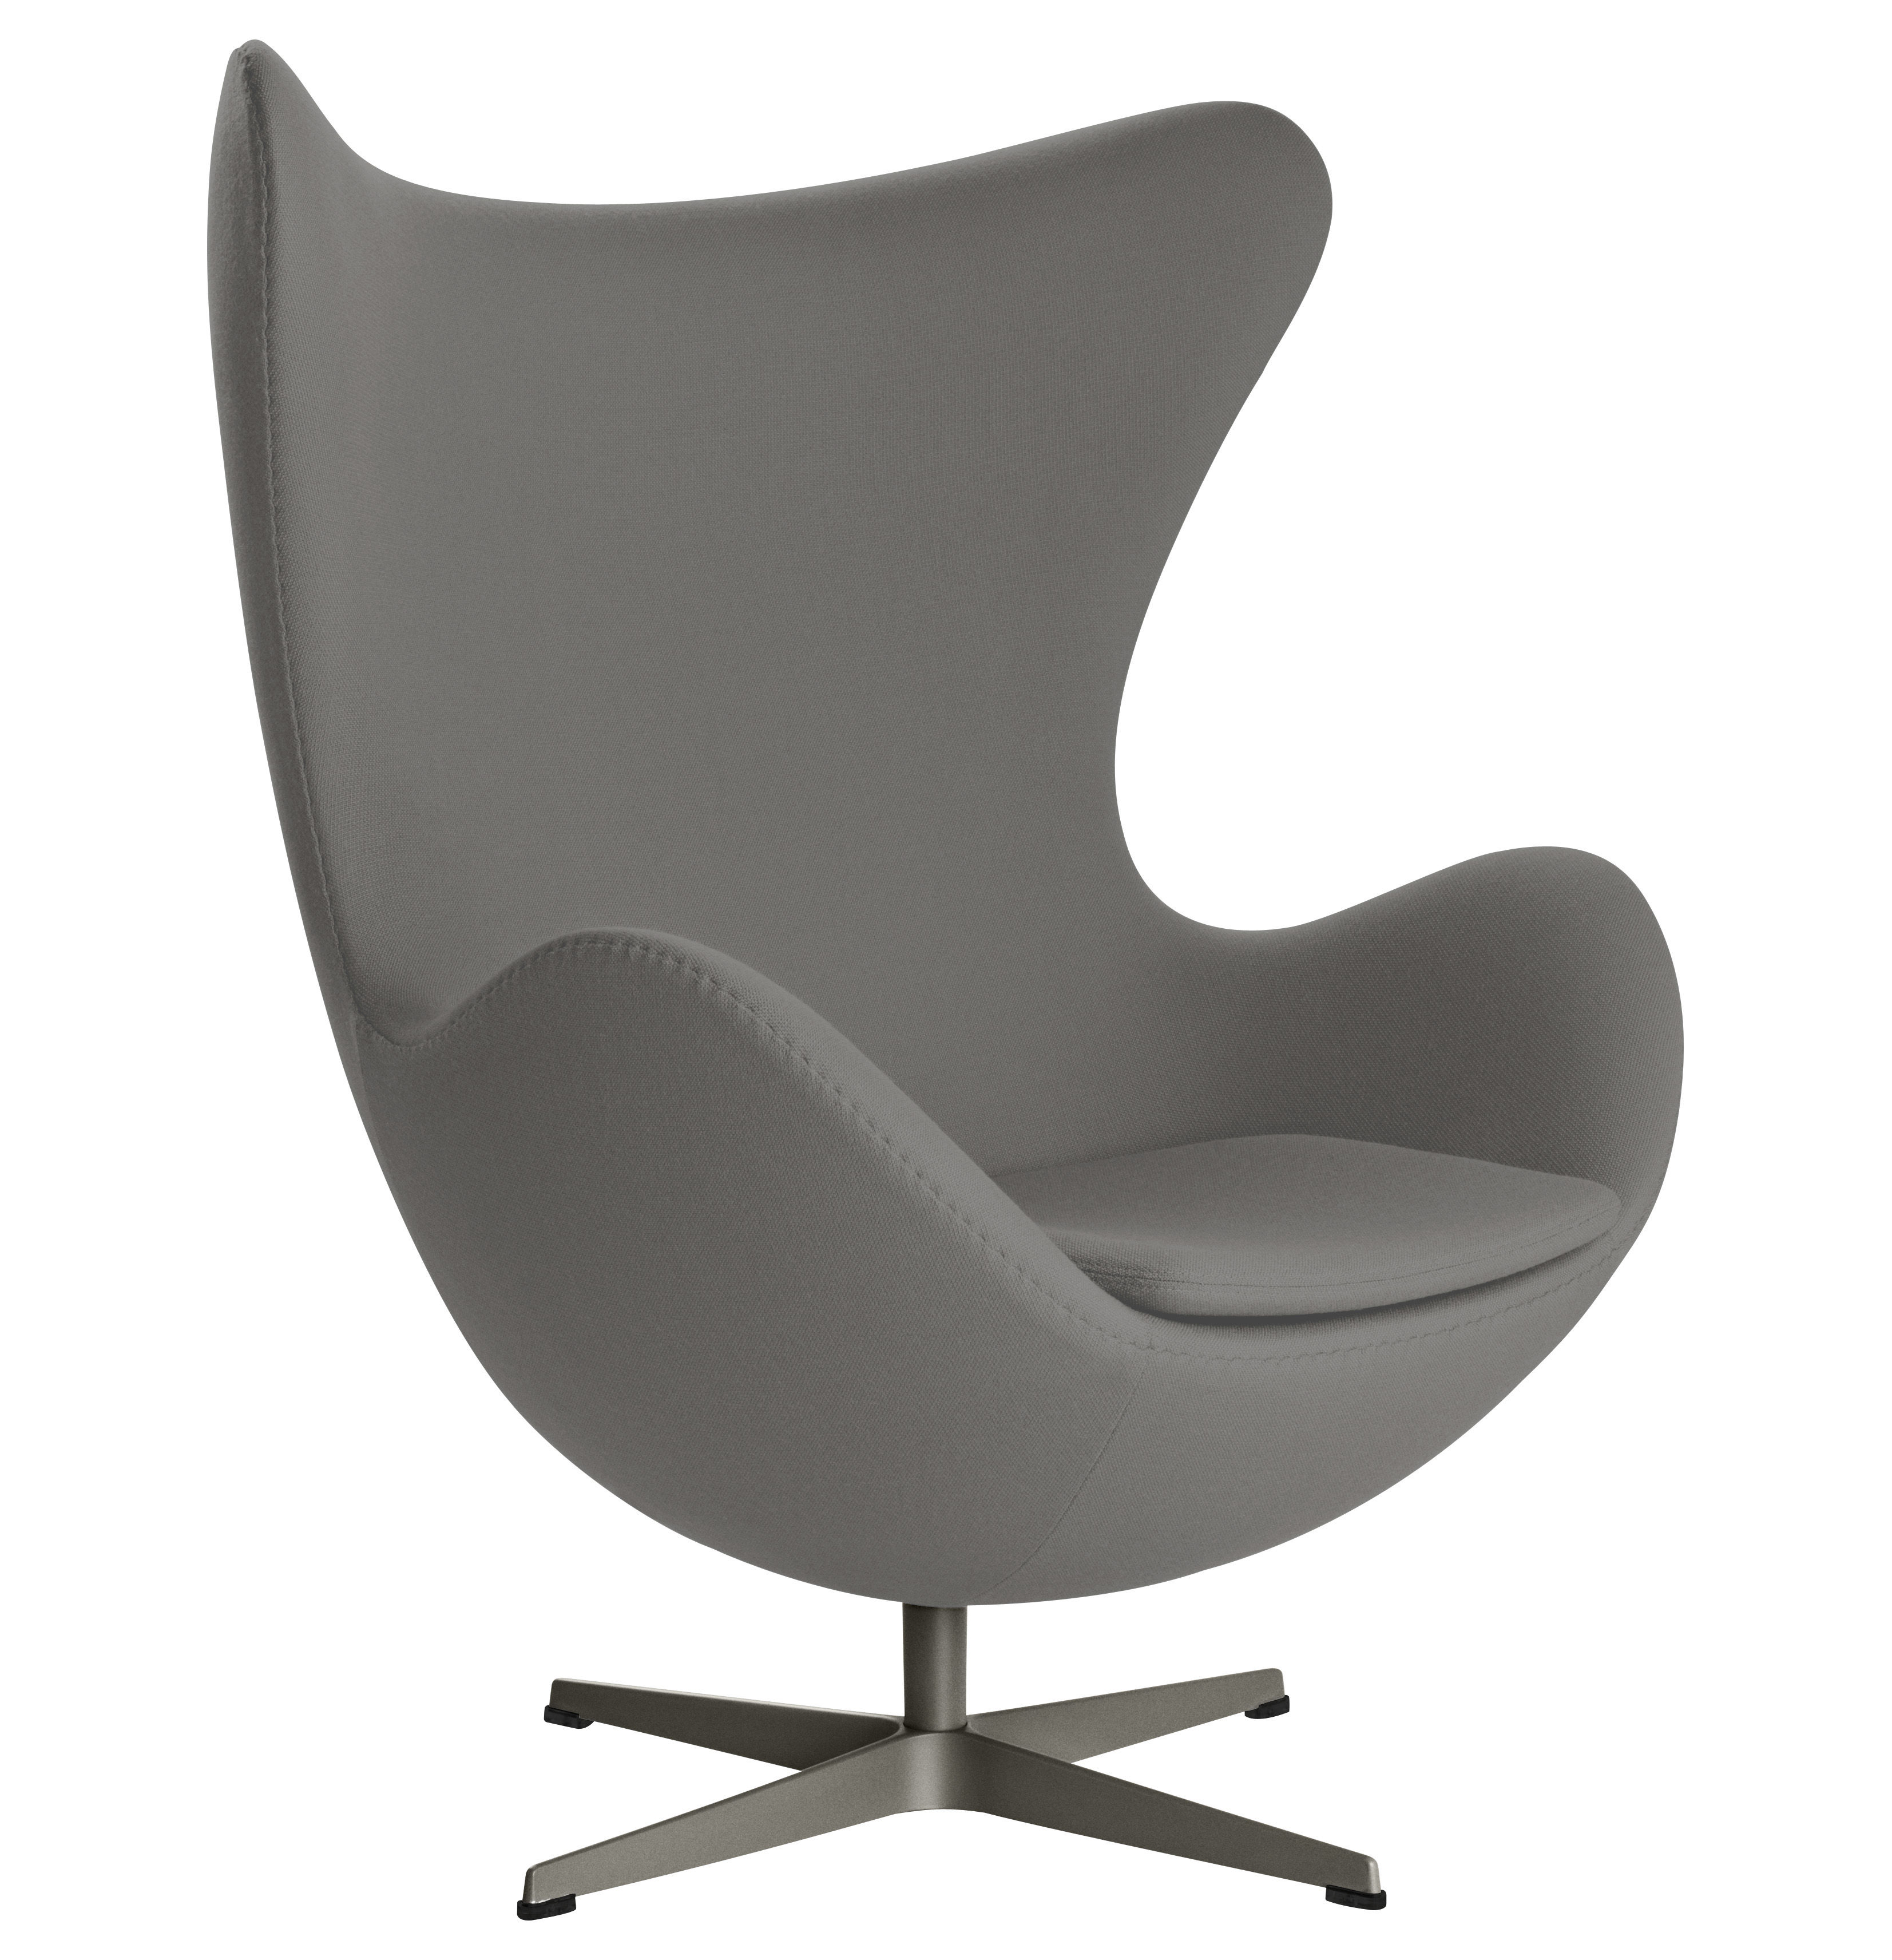 egg chair swivel armchair gabriele fame fabric dark grey by fritz hansen. Black Bedroom Furniture Sets. Home Design Ideas